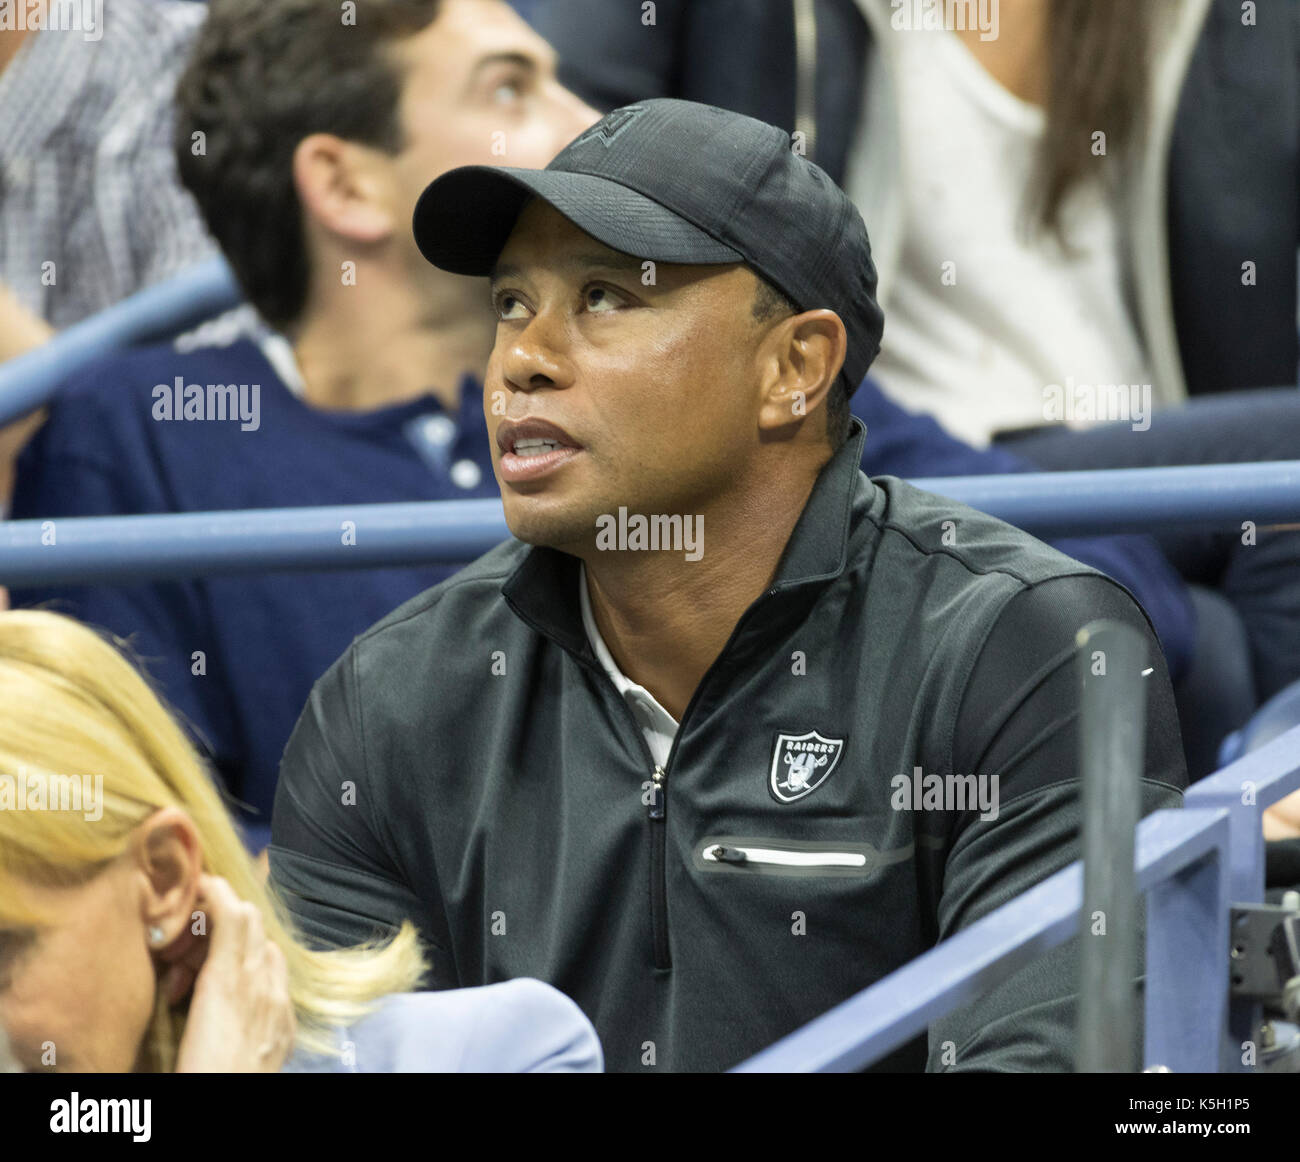 New York, United States. 08th Sep, 2017. Tiger Woods attends day 12 of US Open Championships at Billie Jean King National Tennis Center Credit: Lev Radin/Pacific Press/Alamy Live News - Stock Image